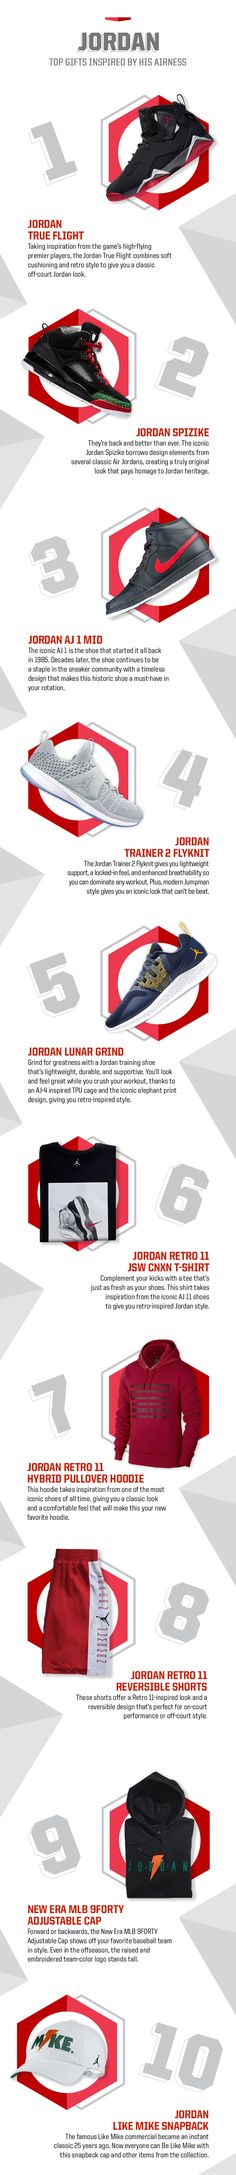 Give the gift of Air. Check out our must-have picks for Jumpman fans. #Jordan #JordanShoes #giftideas #Jumpman